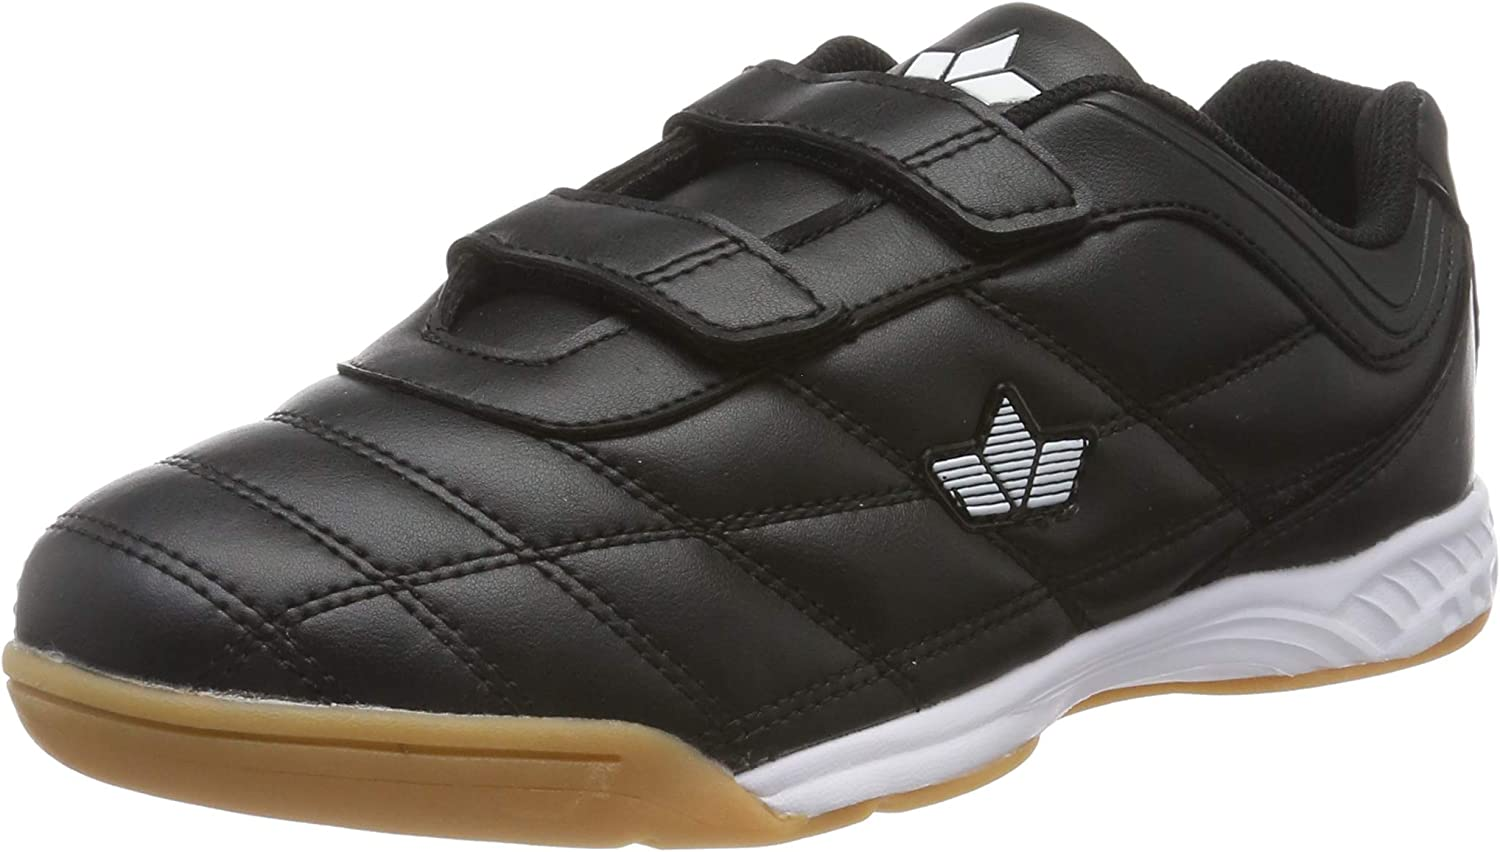 Chaussures Multisport Indoor Mixte Adulte Lico Sports V